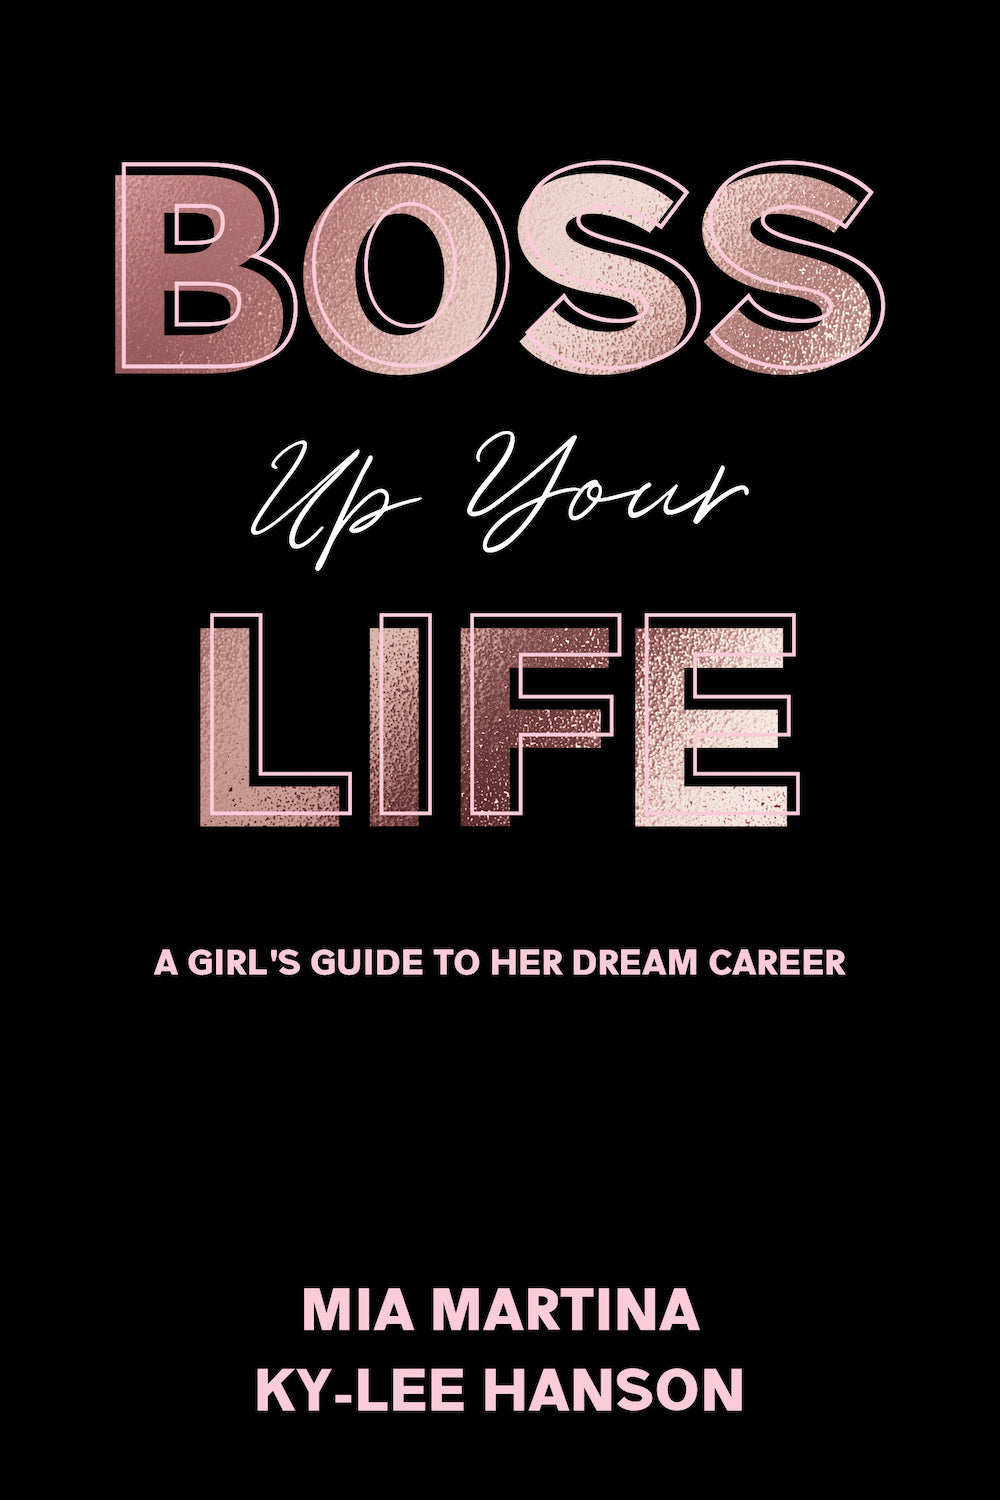 Boss Up Your Life: A Girl's Guide To Her Dream Career (pre-order)